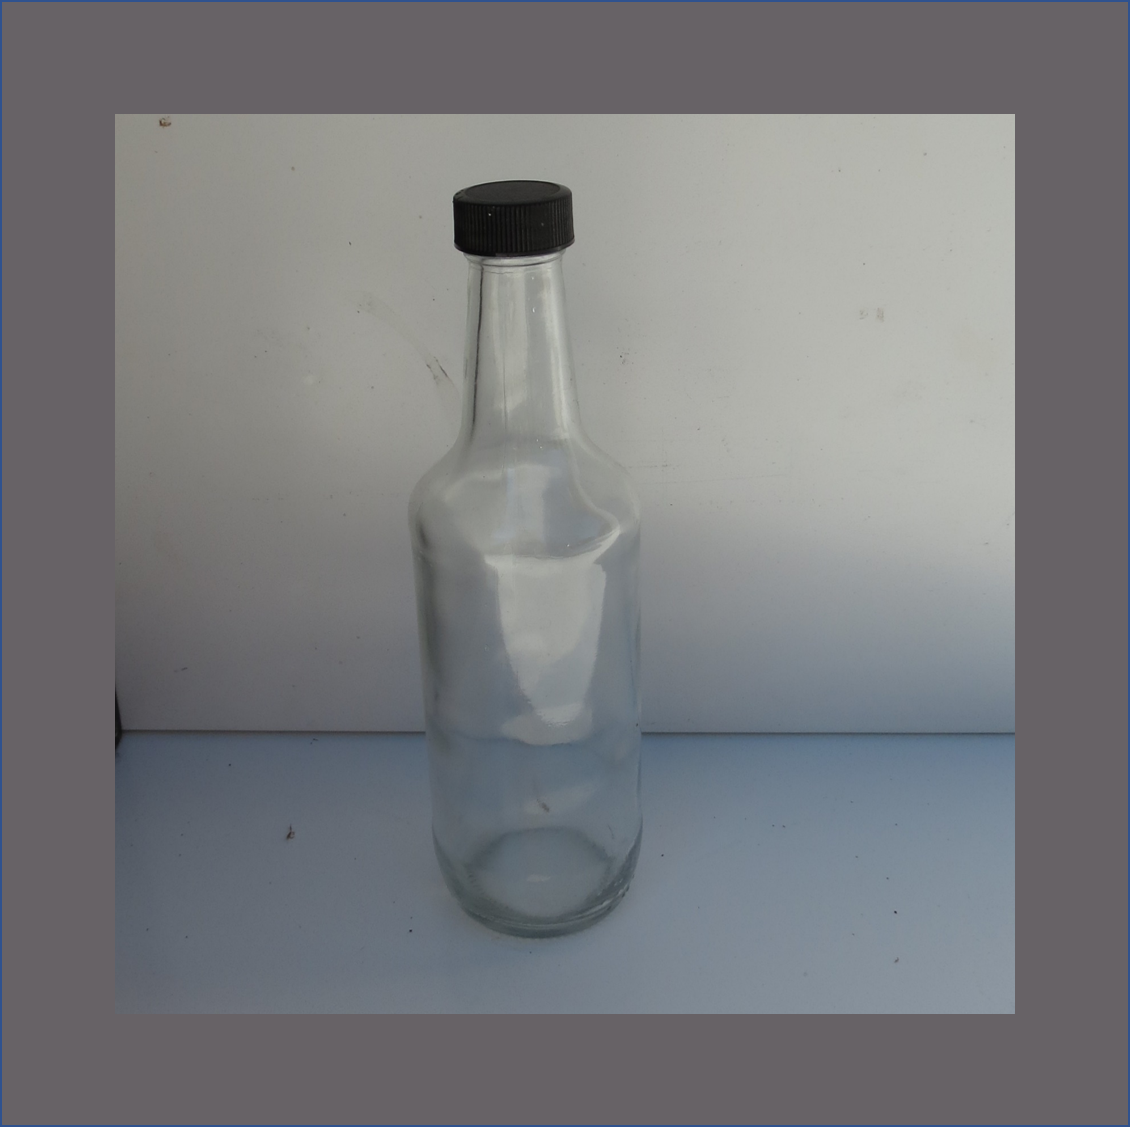 glass-bottle-m--------